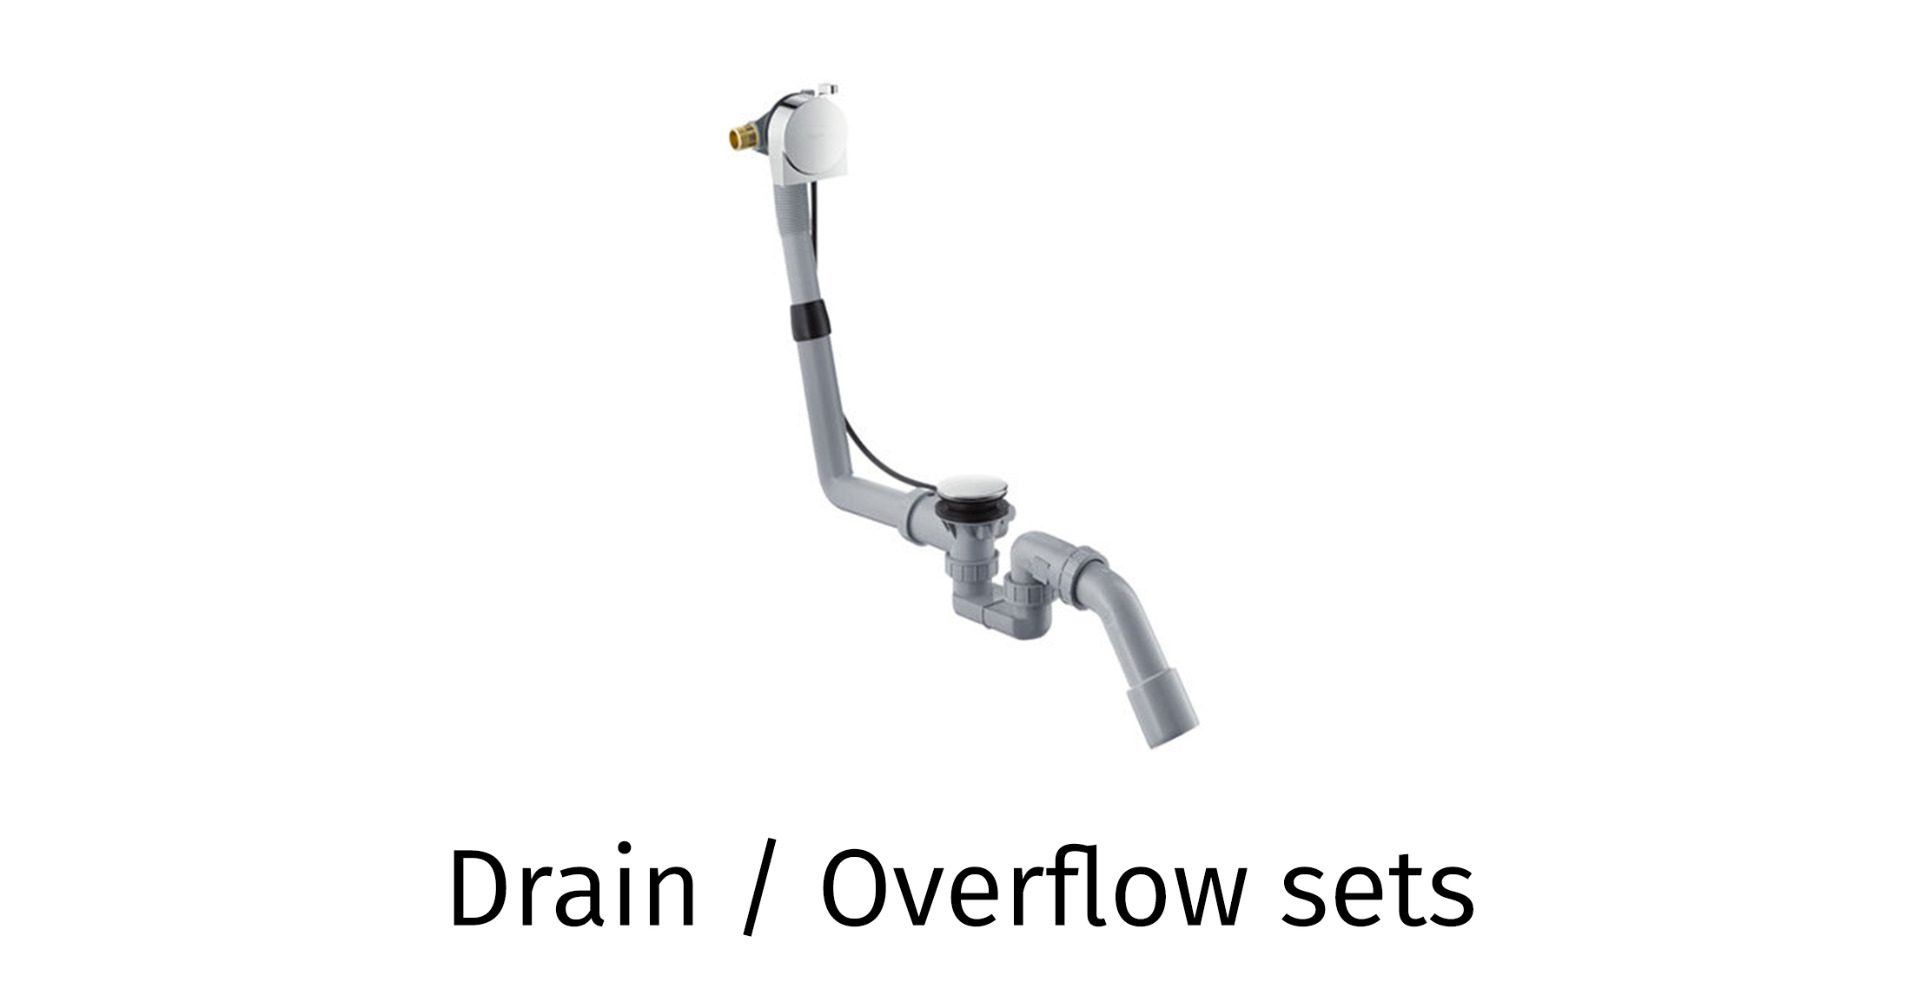 Drain / Overflow sets